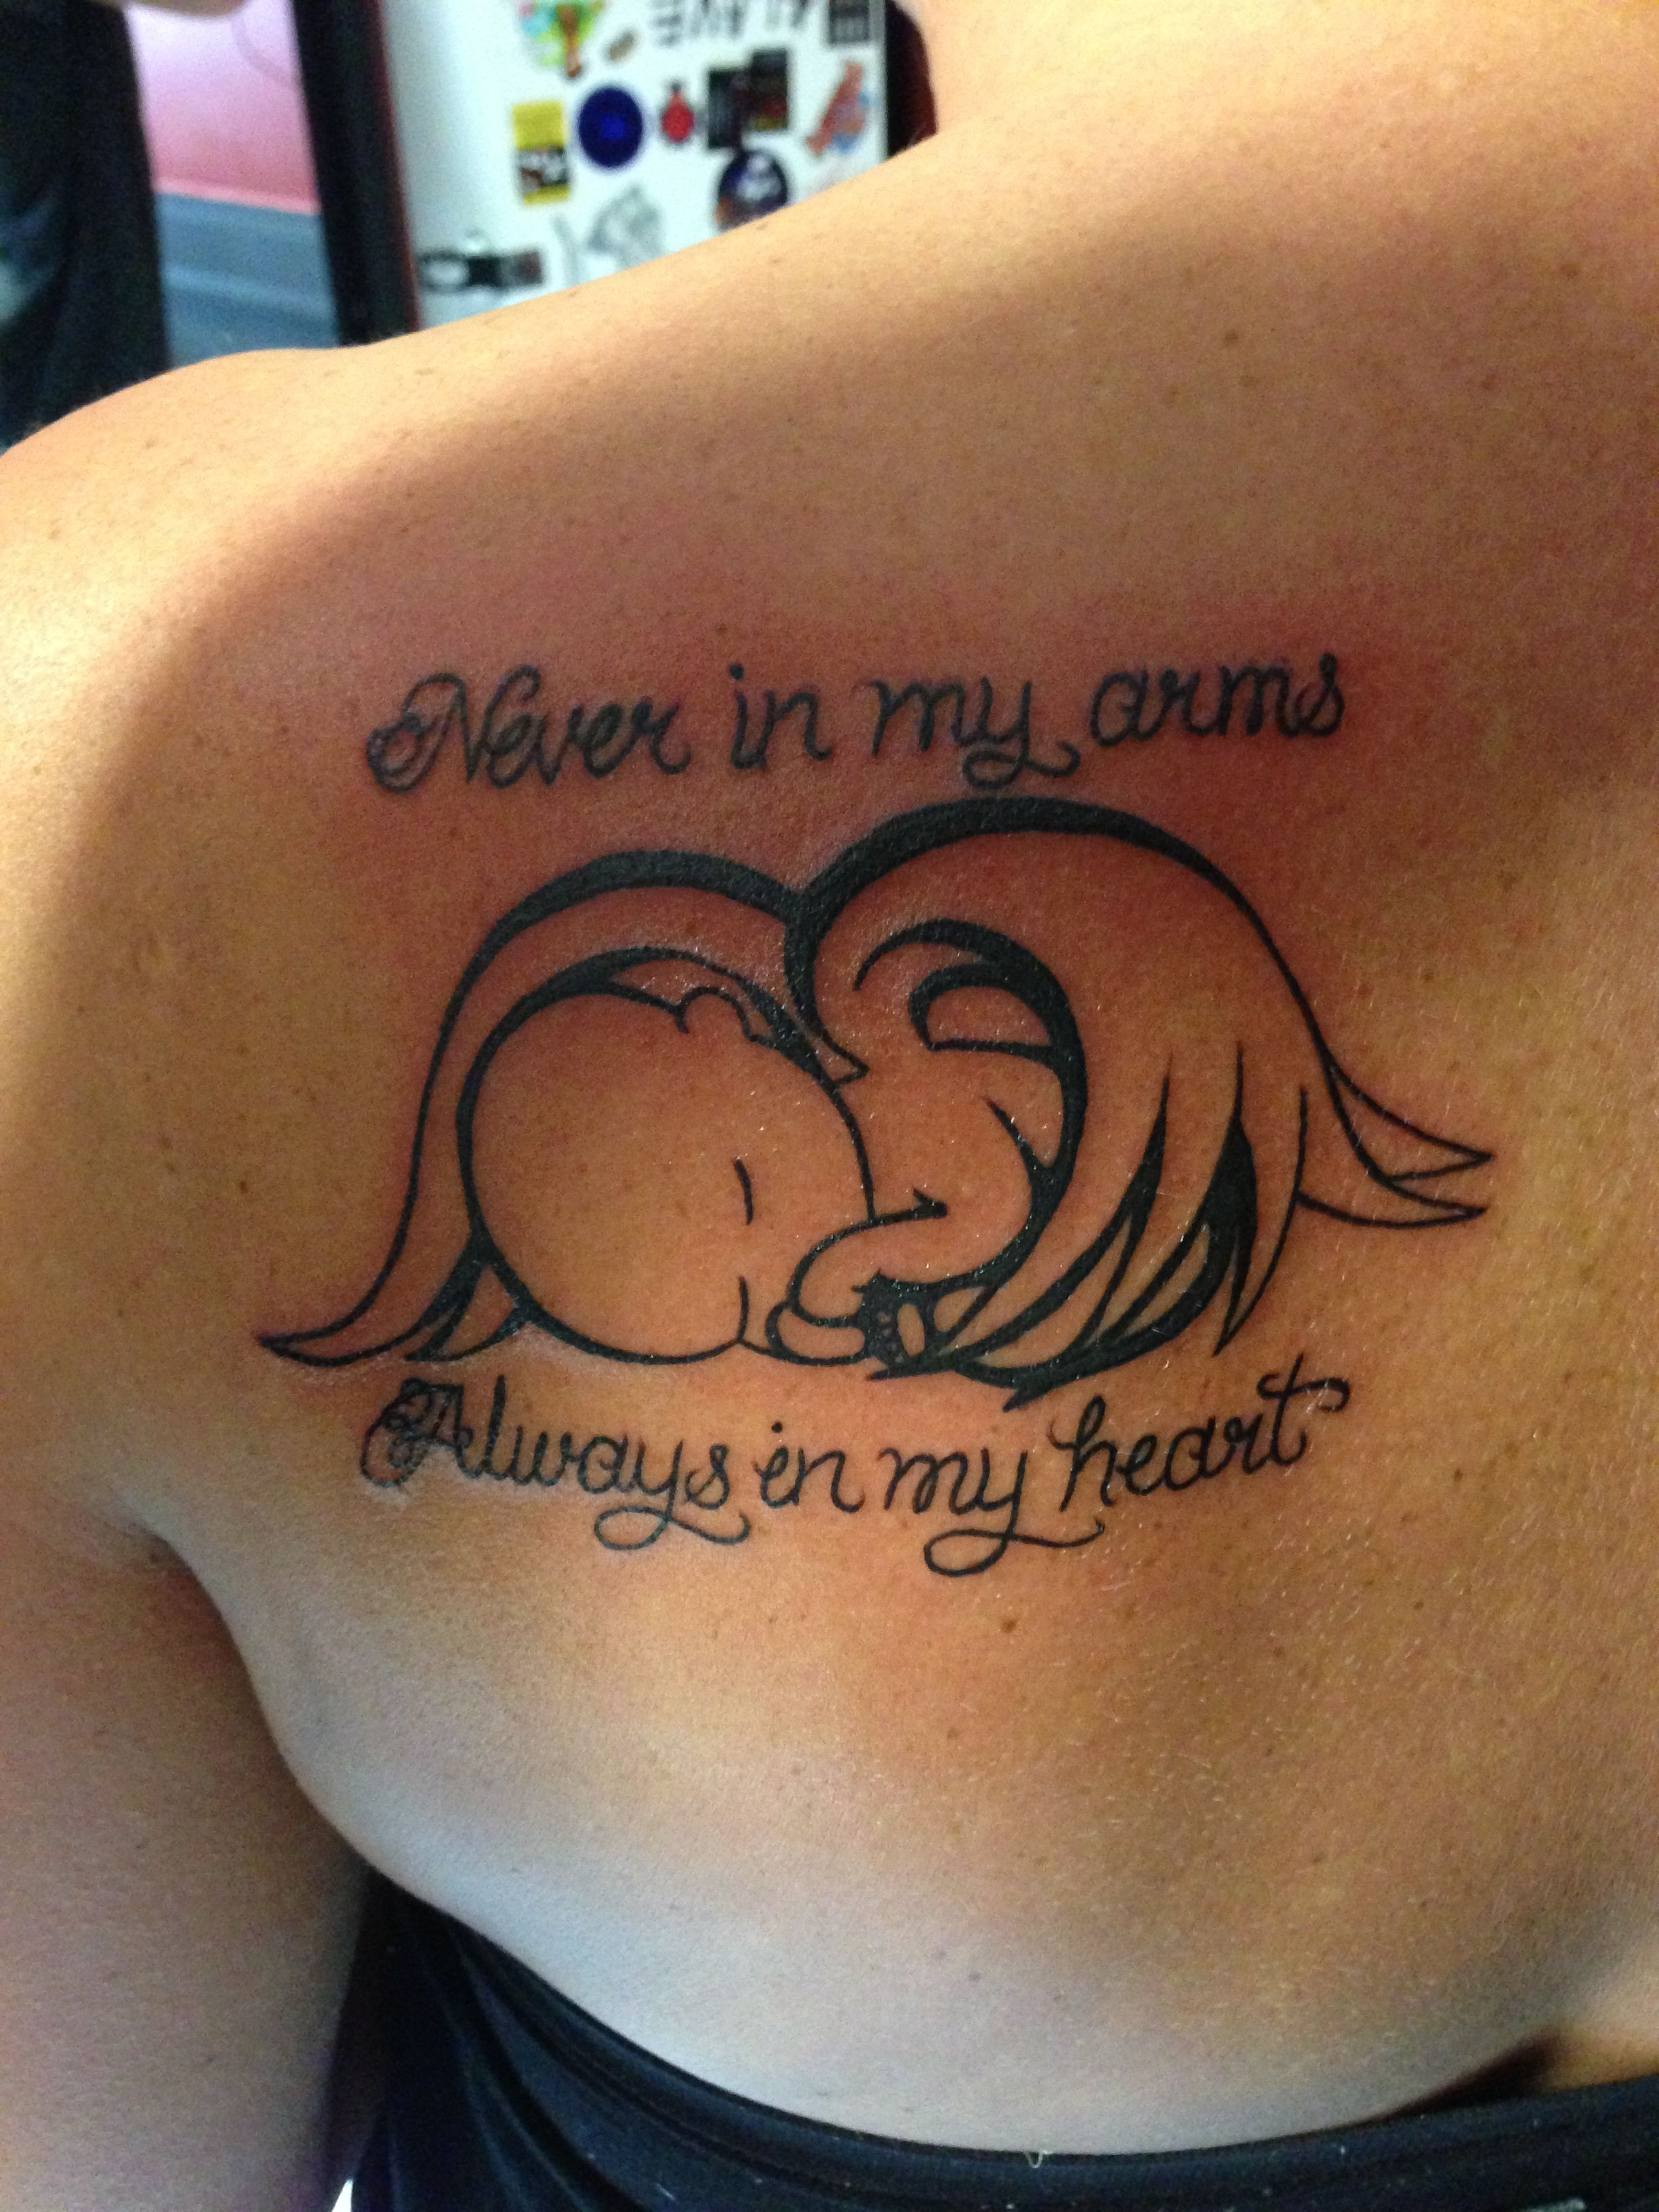 Twin baby name tattoo ideas miscarriage tattoos  miscarriage tattoo reminds me of my loving